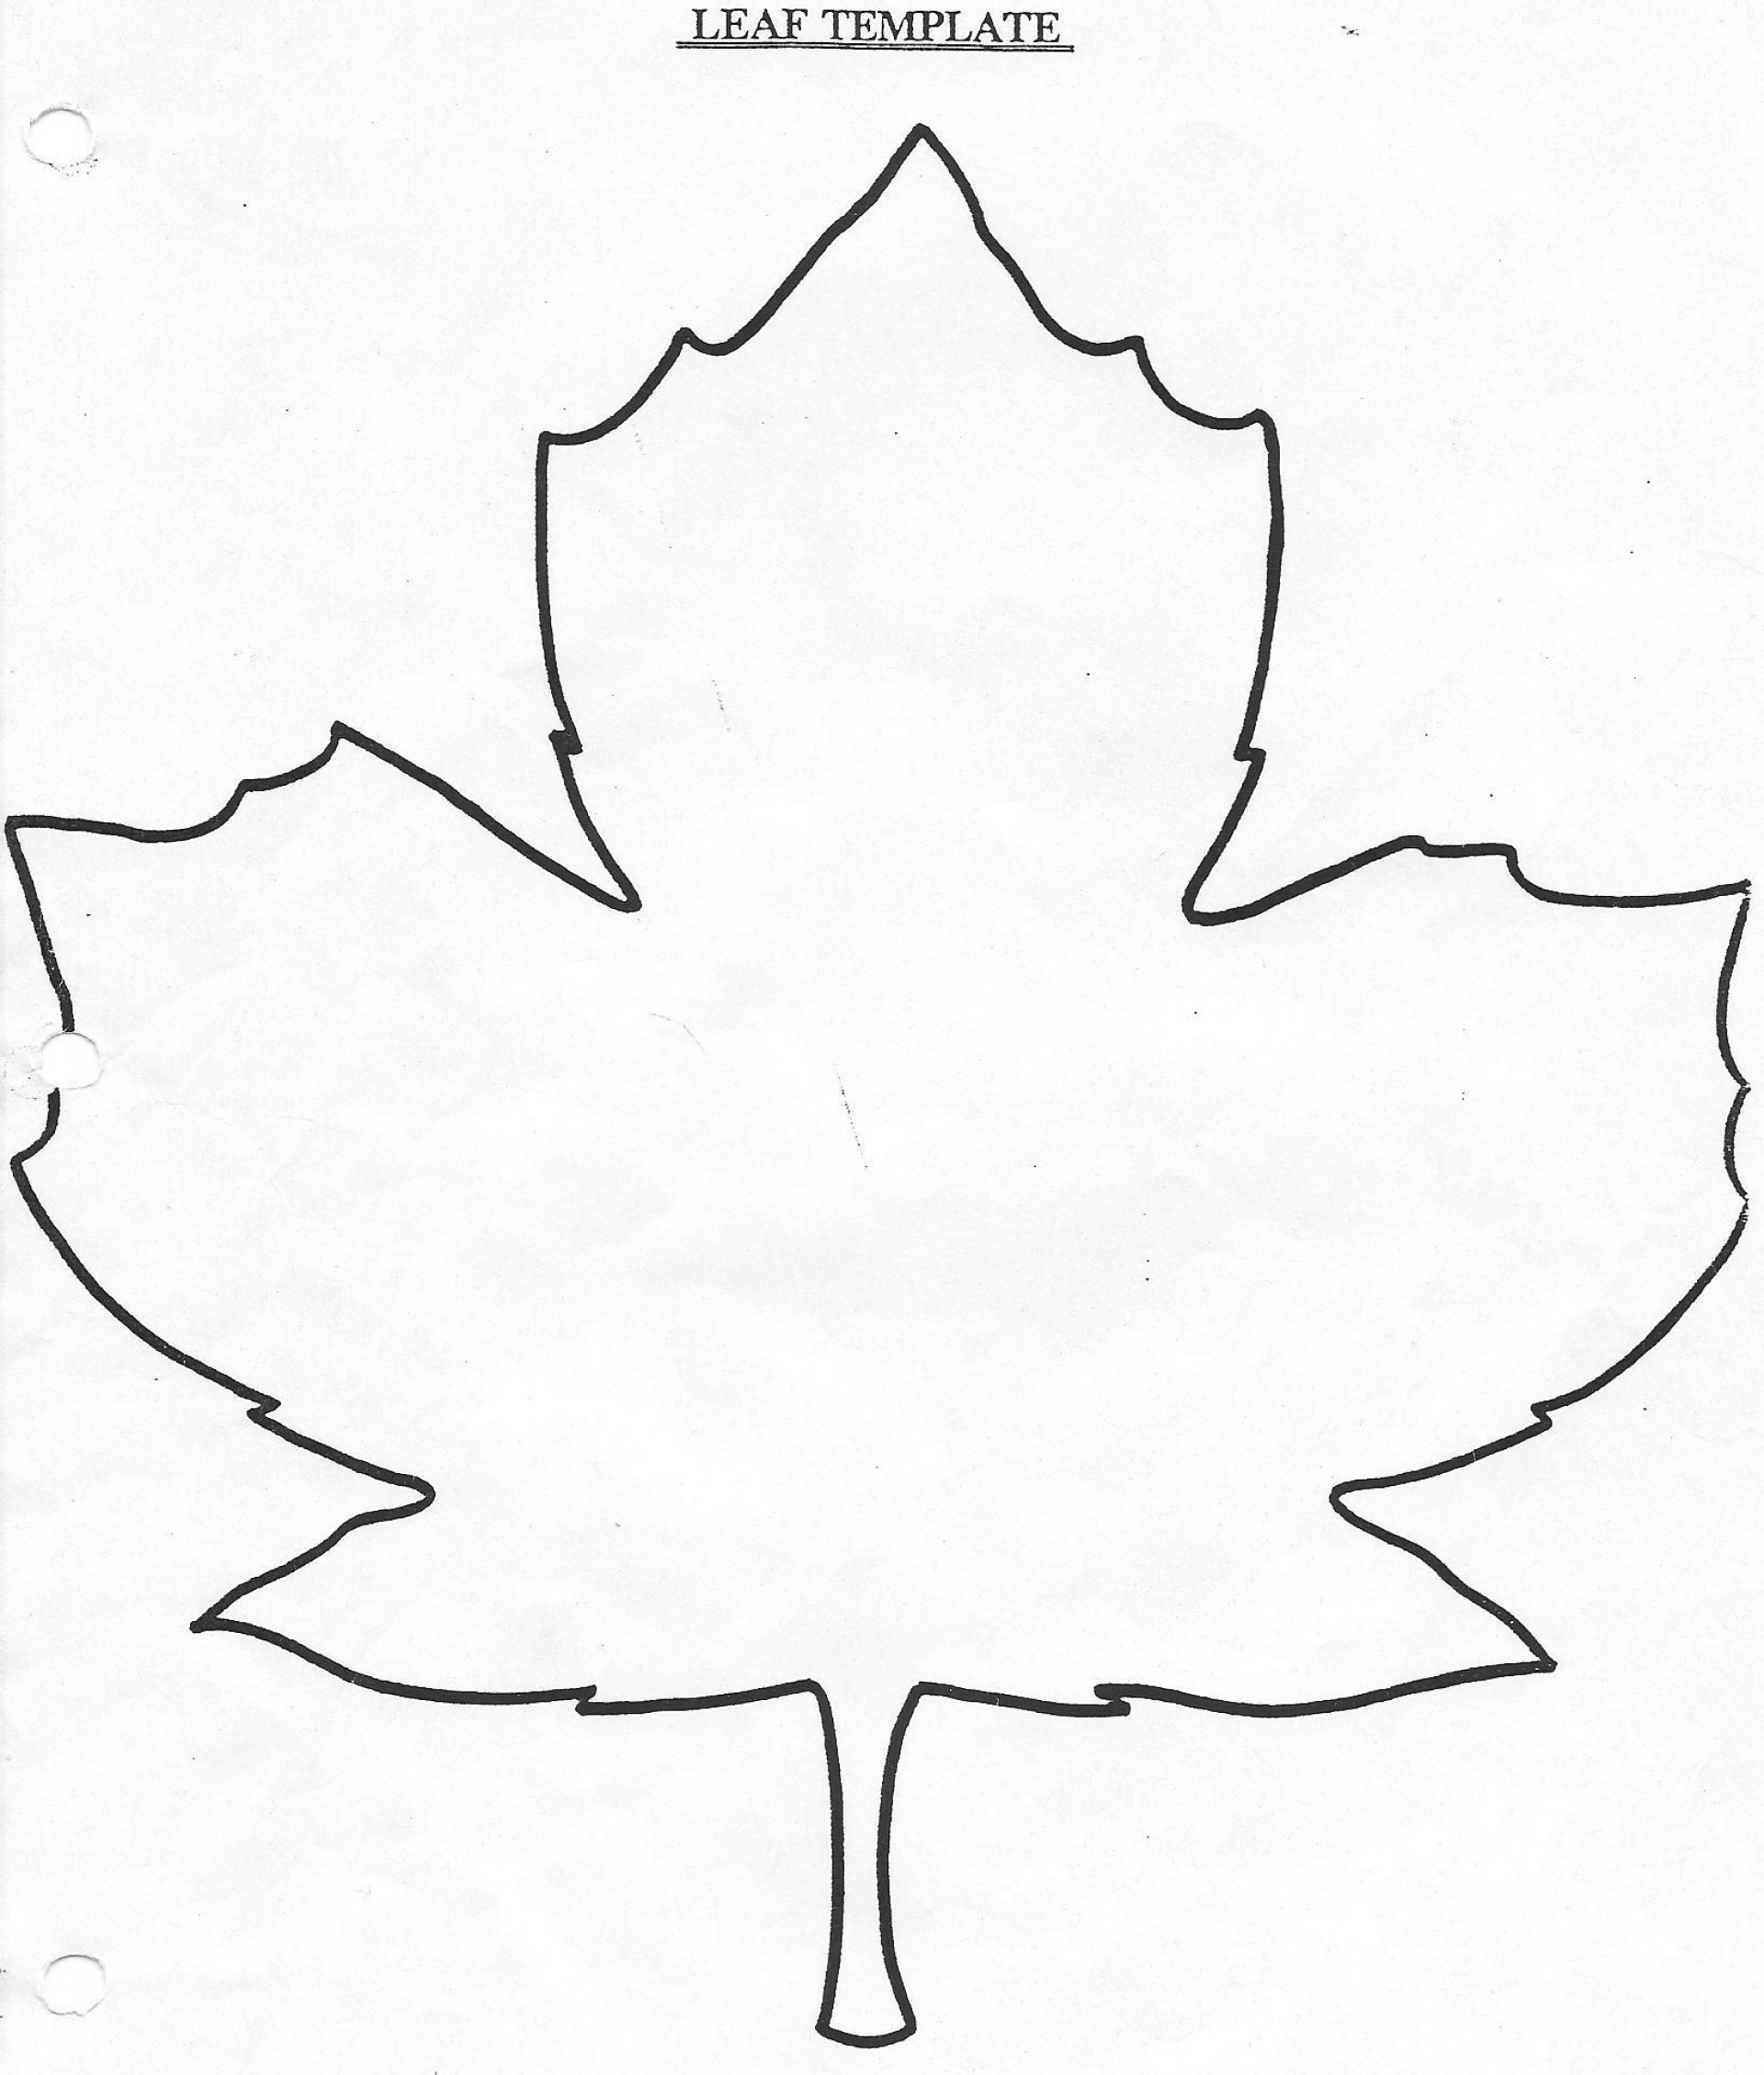 008 Archaicawful Blank Leaf Template With Line Photo  Lines Printable1920